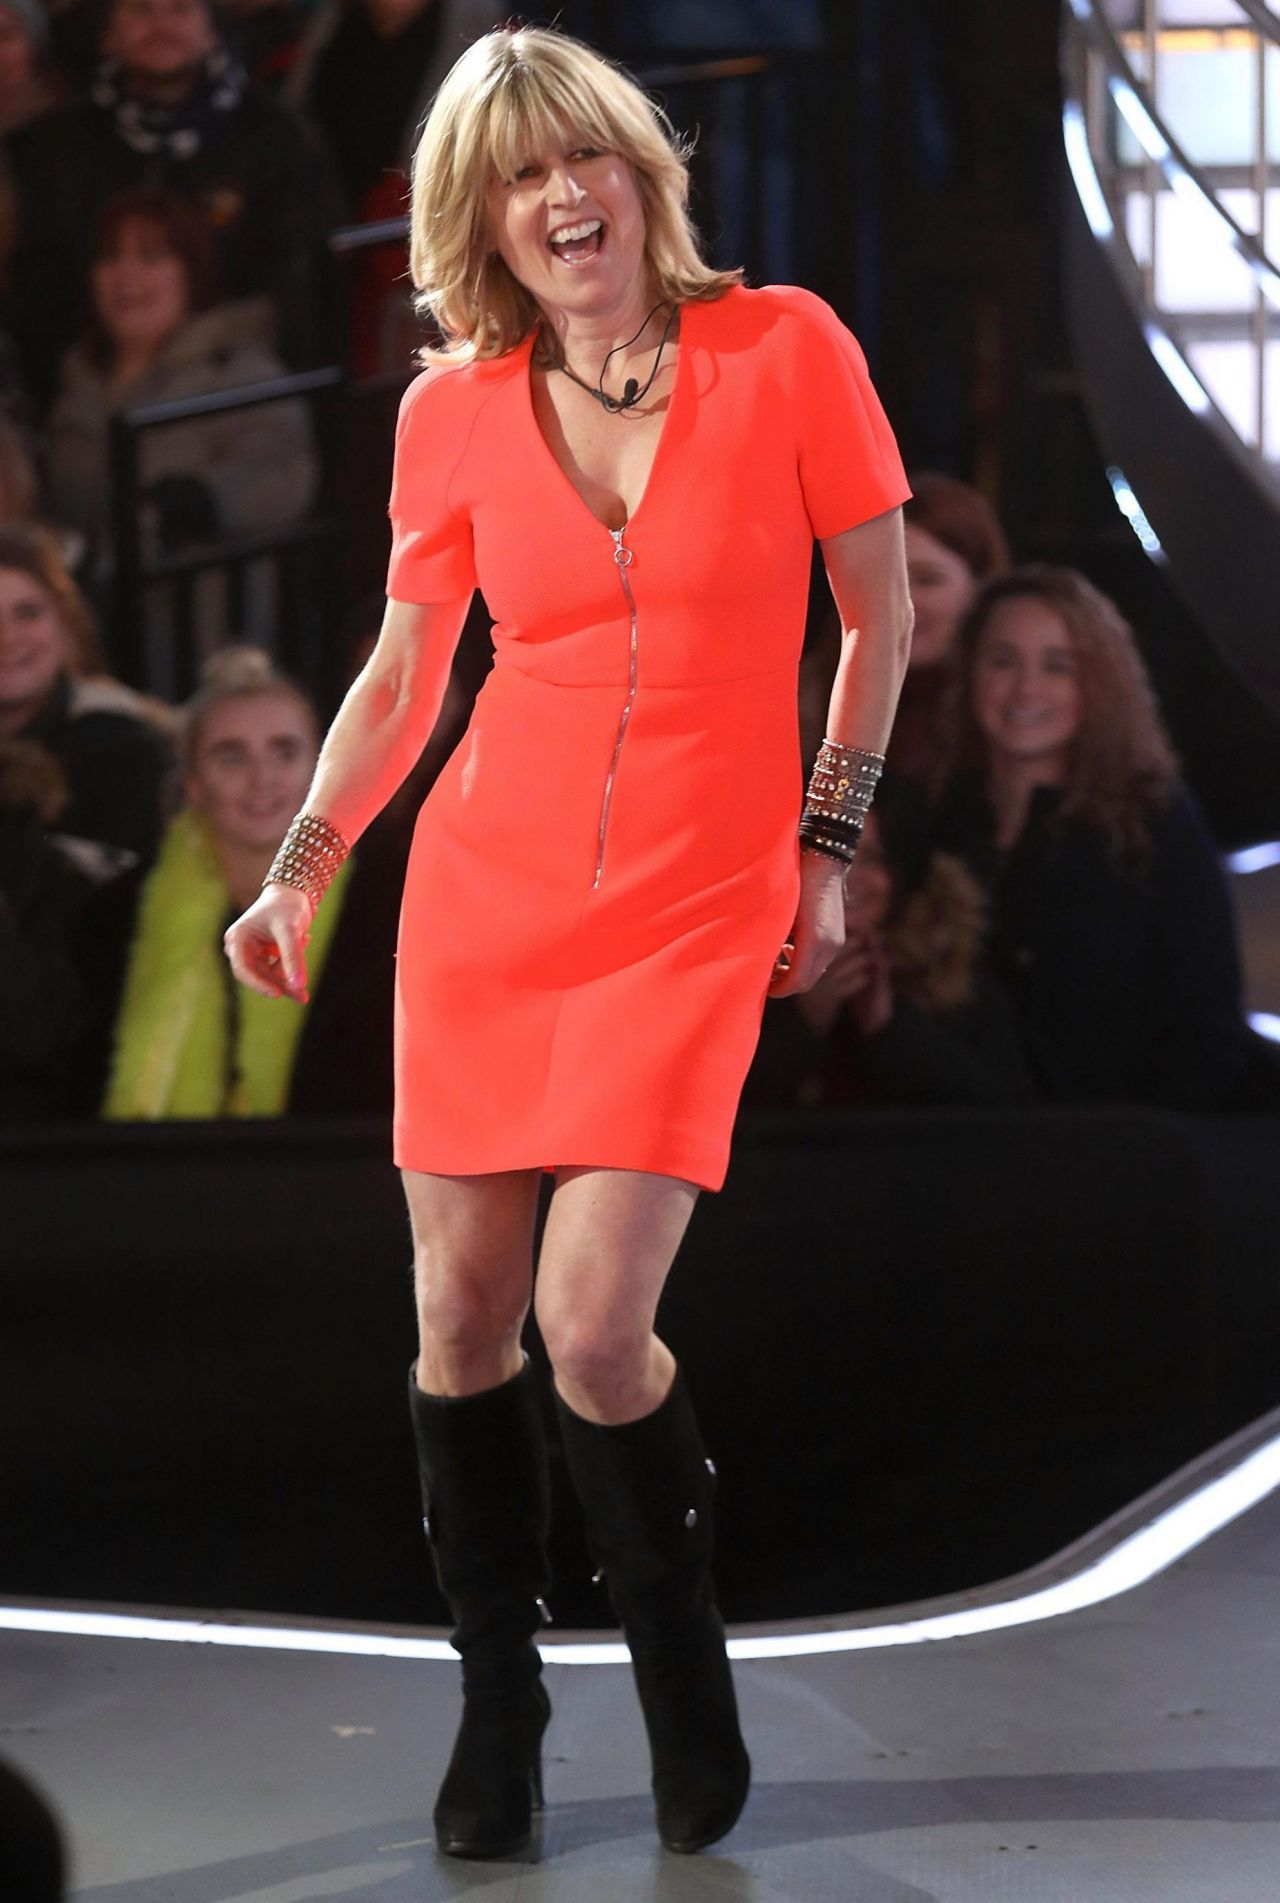 Celebrity big brother 2019 eviction night